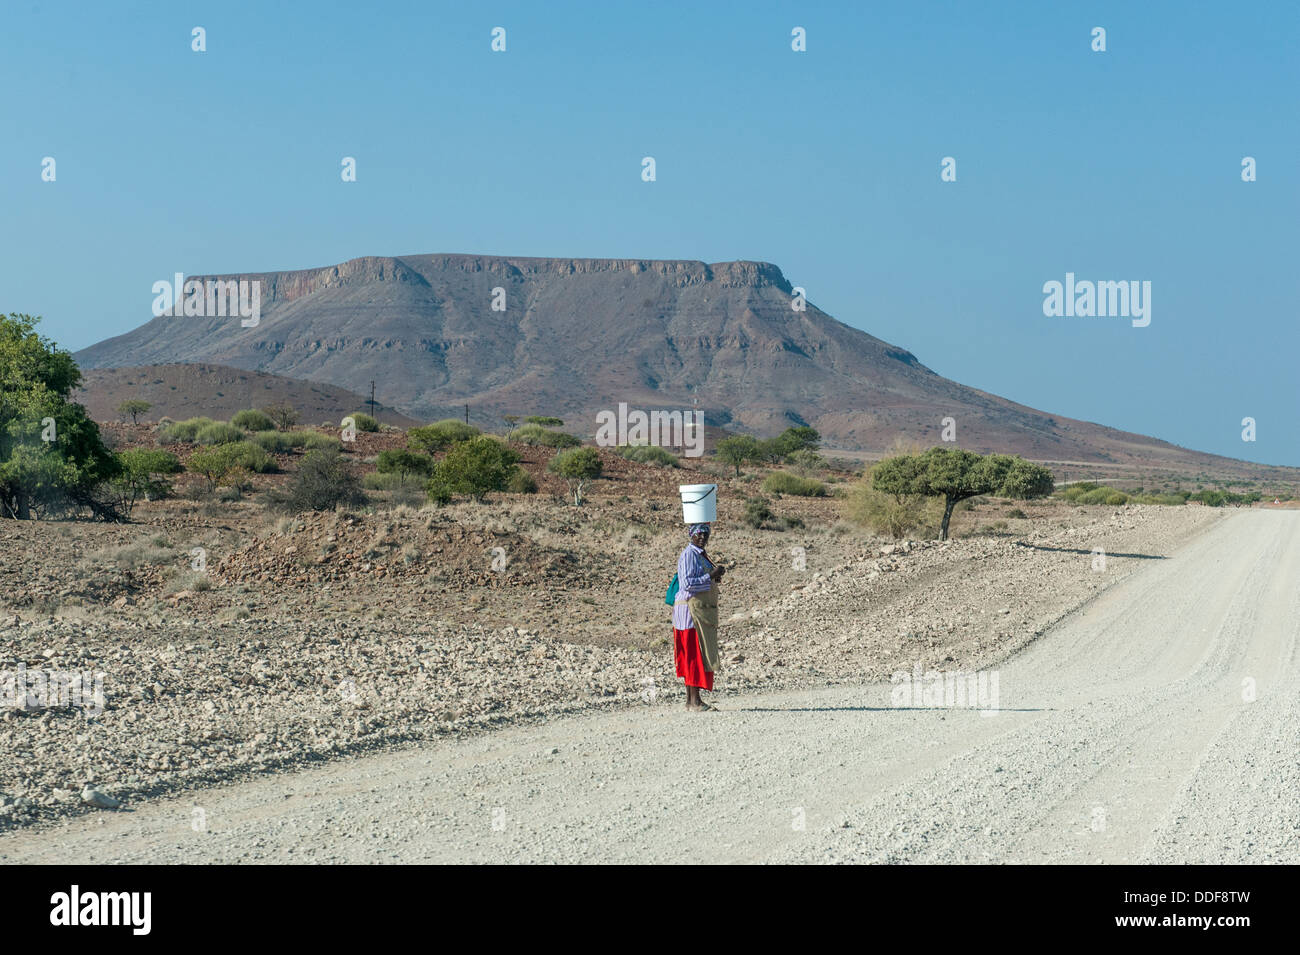 A woman with a bucket on her head standing at a gravel road in dry landscape, Kunene Region, Namibia - Stock Image